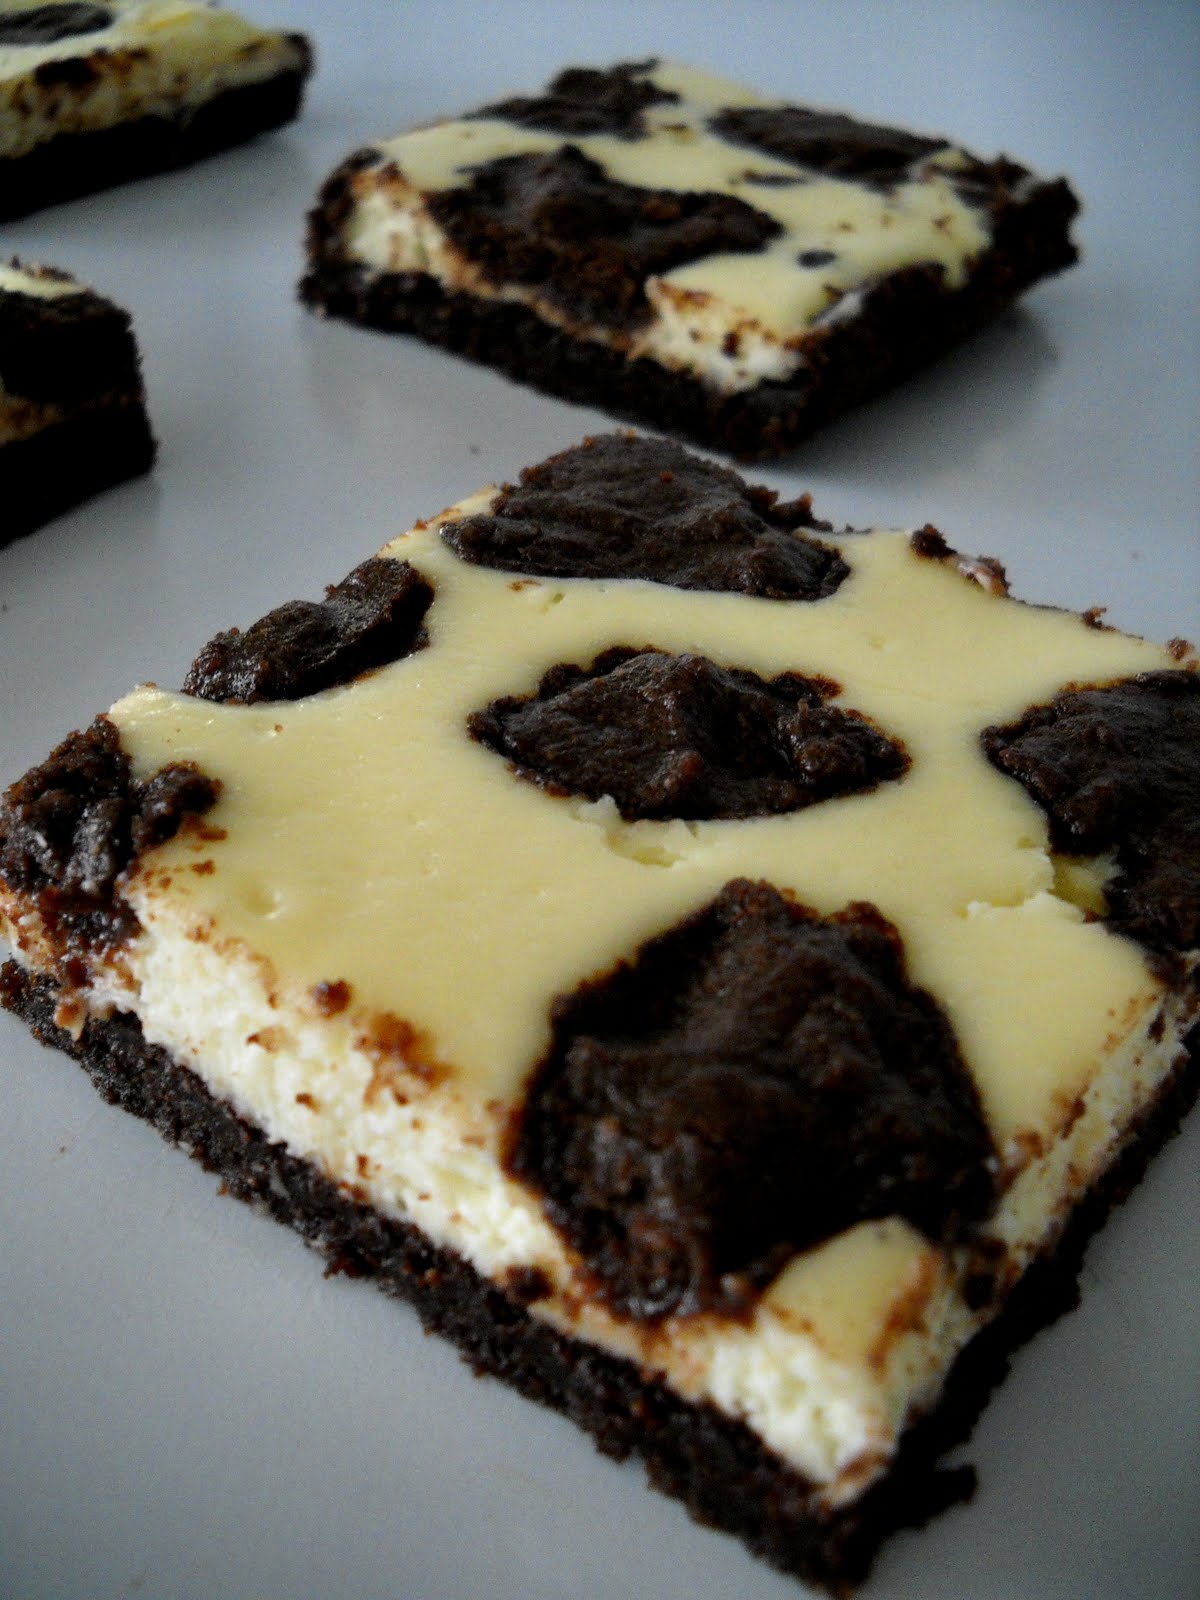 ... cheesecake squares dulce de leche cheesecake squares black and white